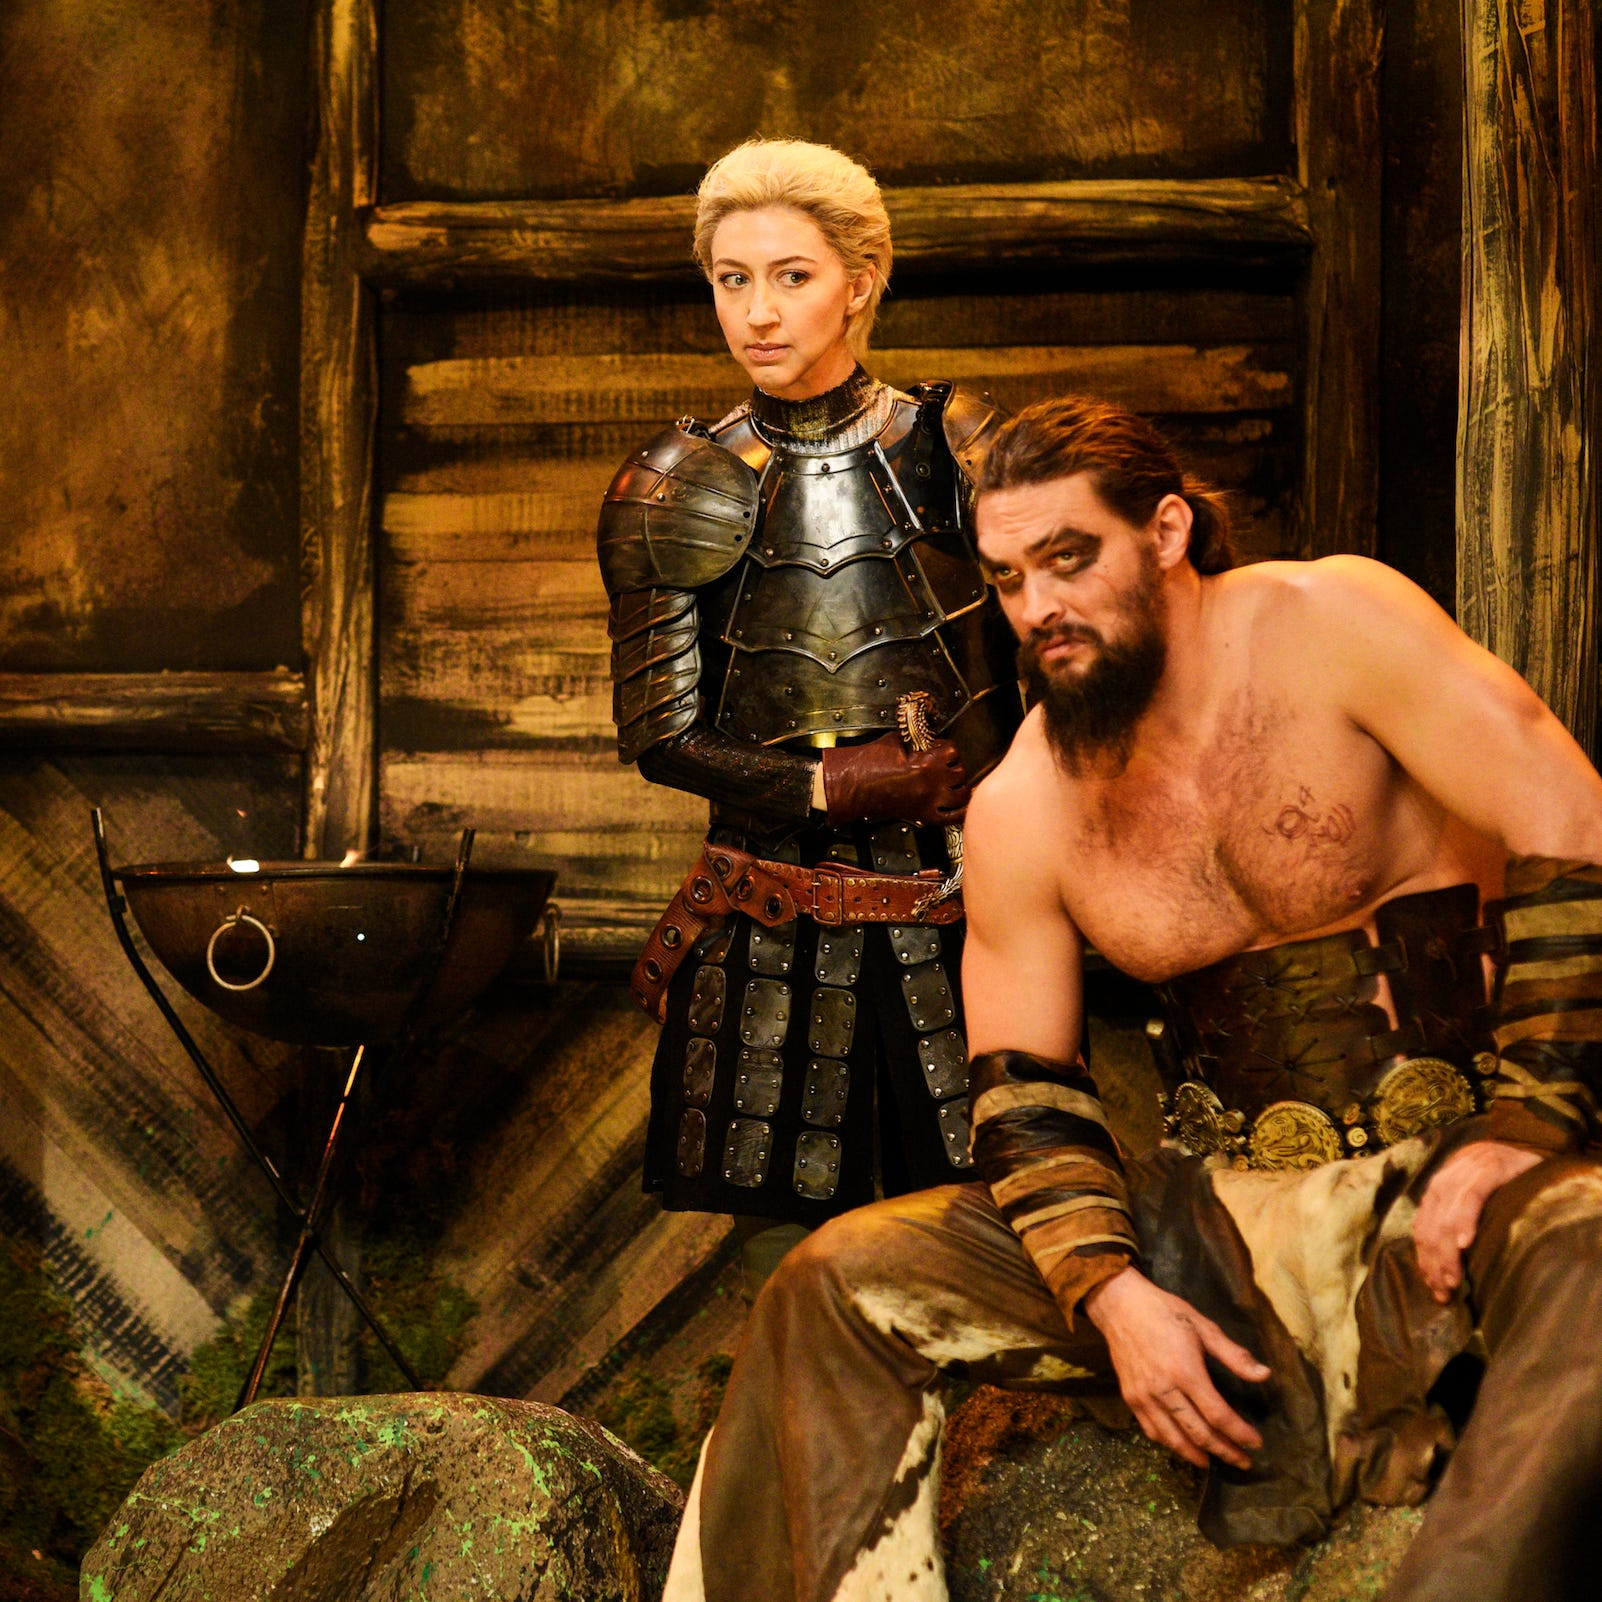 """SATURDAY NIGHT LIVE -- """"Jason Momoa"""" Episode 1754 -- Pictured: (l-r) Kenan Thompson as Zerbo, Heidi Gardner as Brienne of Tarth, and host Jason Momoa as Khal Drogo during the """"Khal Drogo's Ghost Dojo"""" sketch on Saturday, December 8, 2018 -- (Photo by: Will Heath/NBC)"""